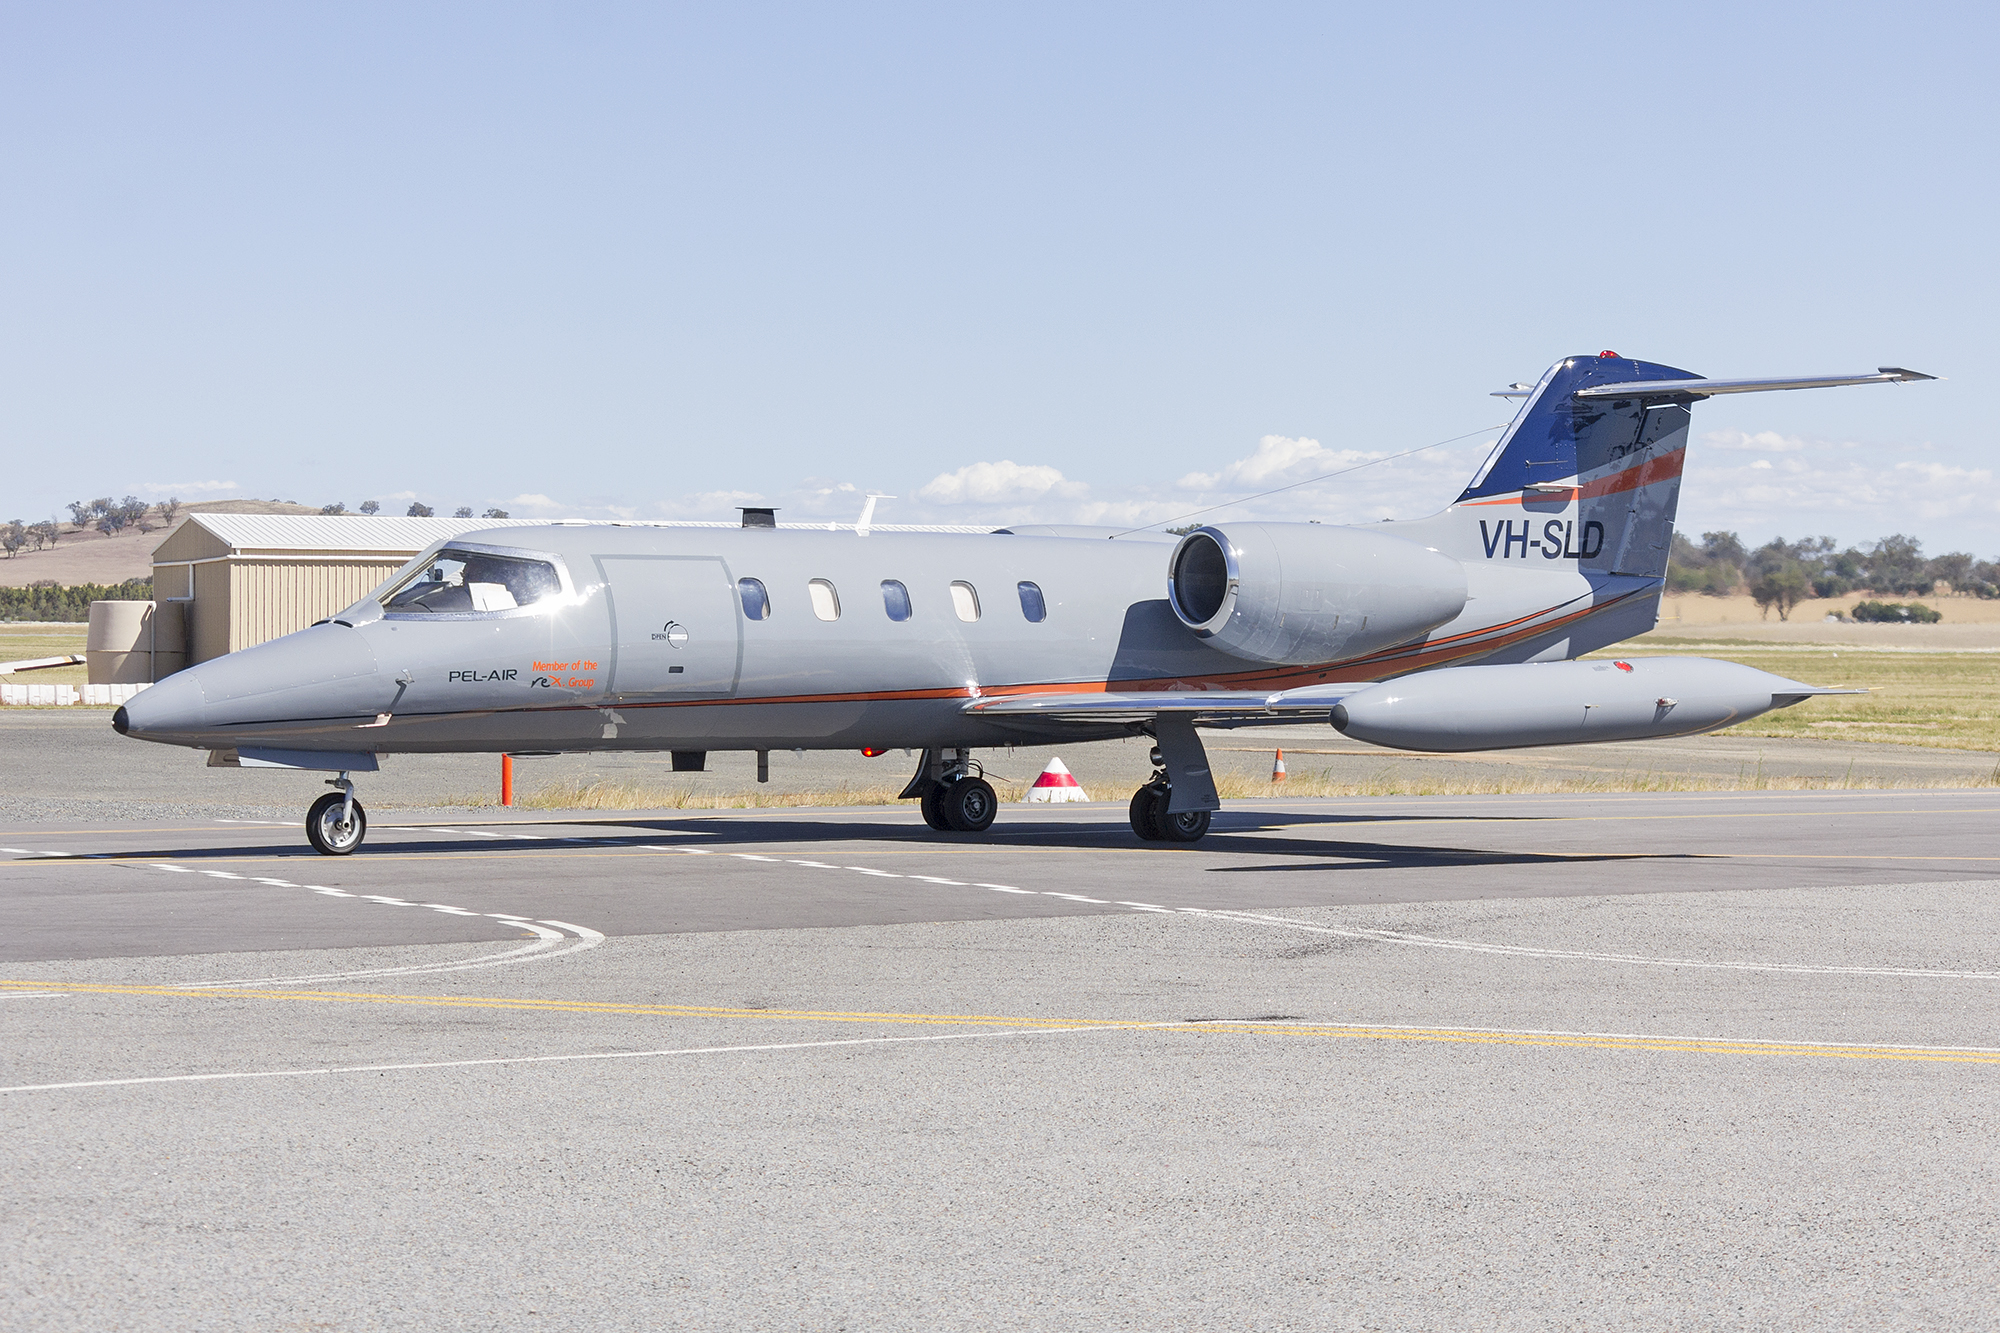 File:Pel-Air (VH-SLD) Learjet 35A taxiing at Wagga Wagga